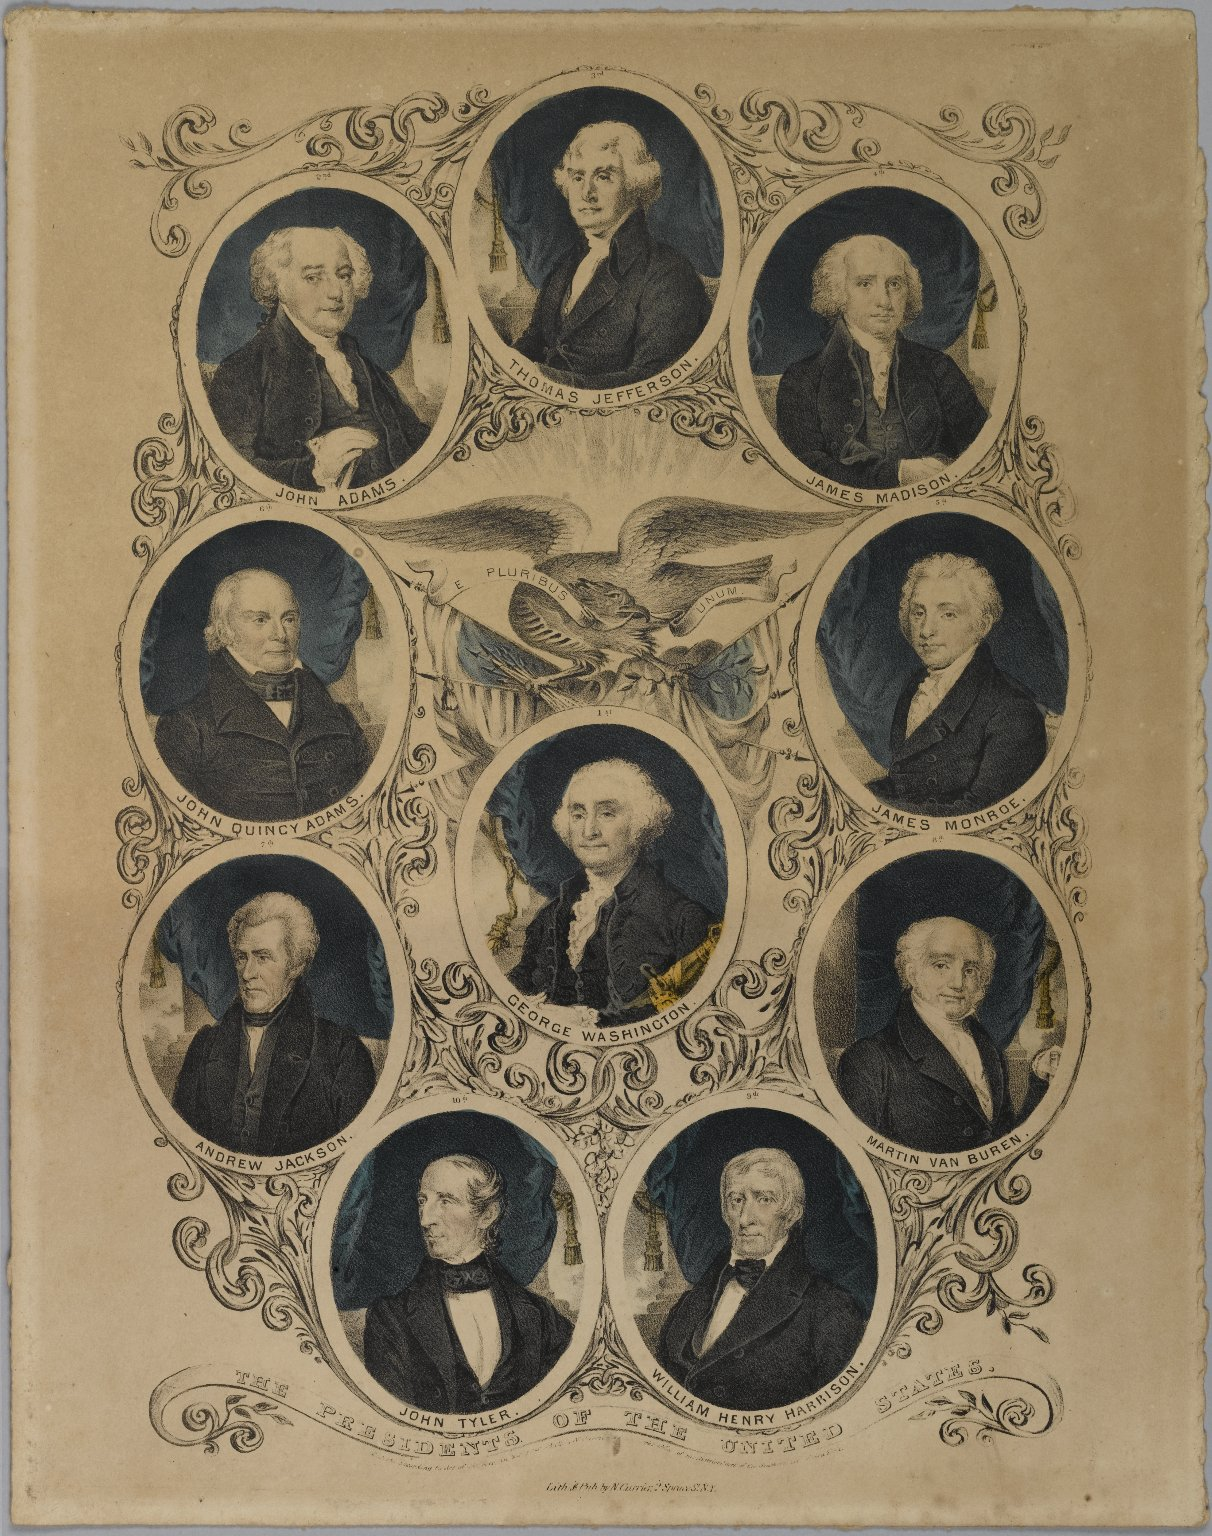 Brooklyn Museum: Presidents of the United States